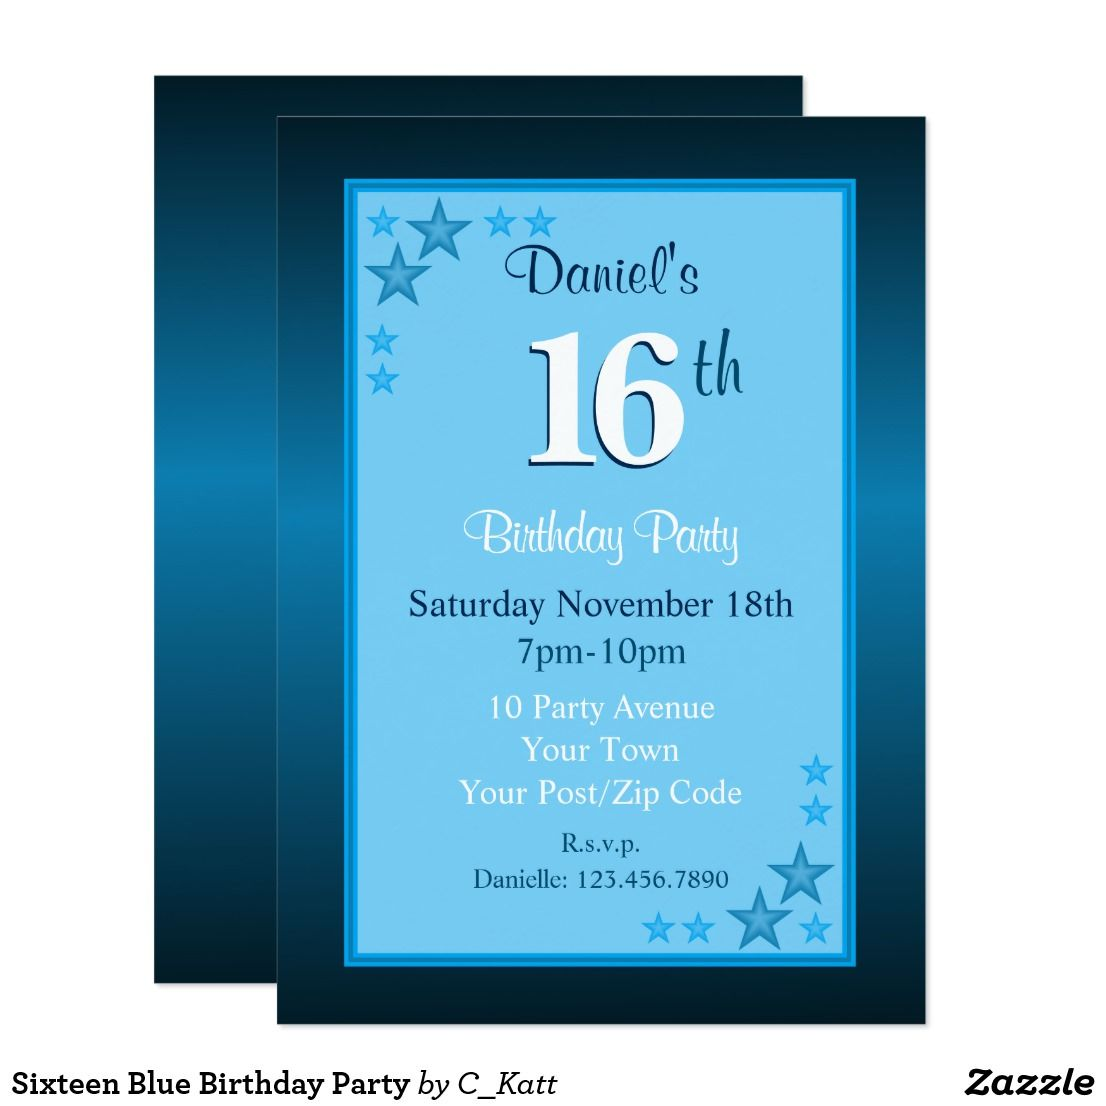 Sixteen Blue Birthday Party Card Sixteenth birthday party invites in blue and white. Stars in the top left and bottom right corners. All details on the front of the invitation are templates with full customization to to add your own details using the text boxes to the right of the design. If you use for a different age be sure to change the number in the number shadow box too.